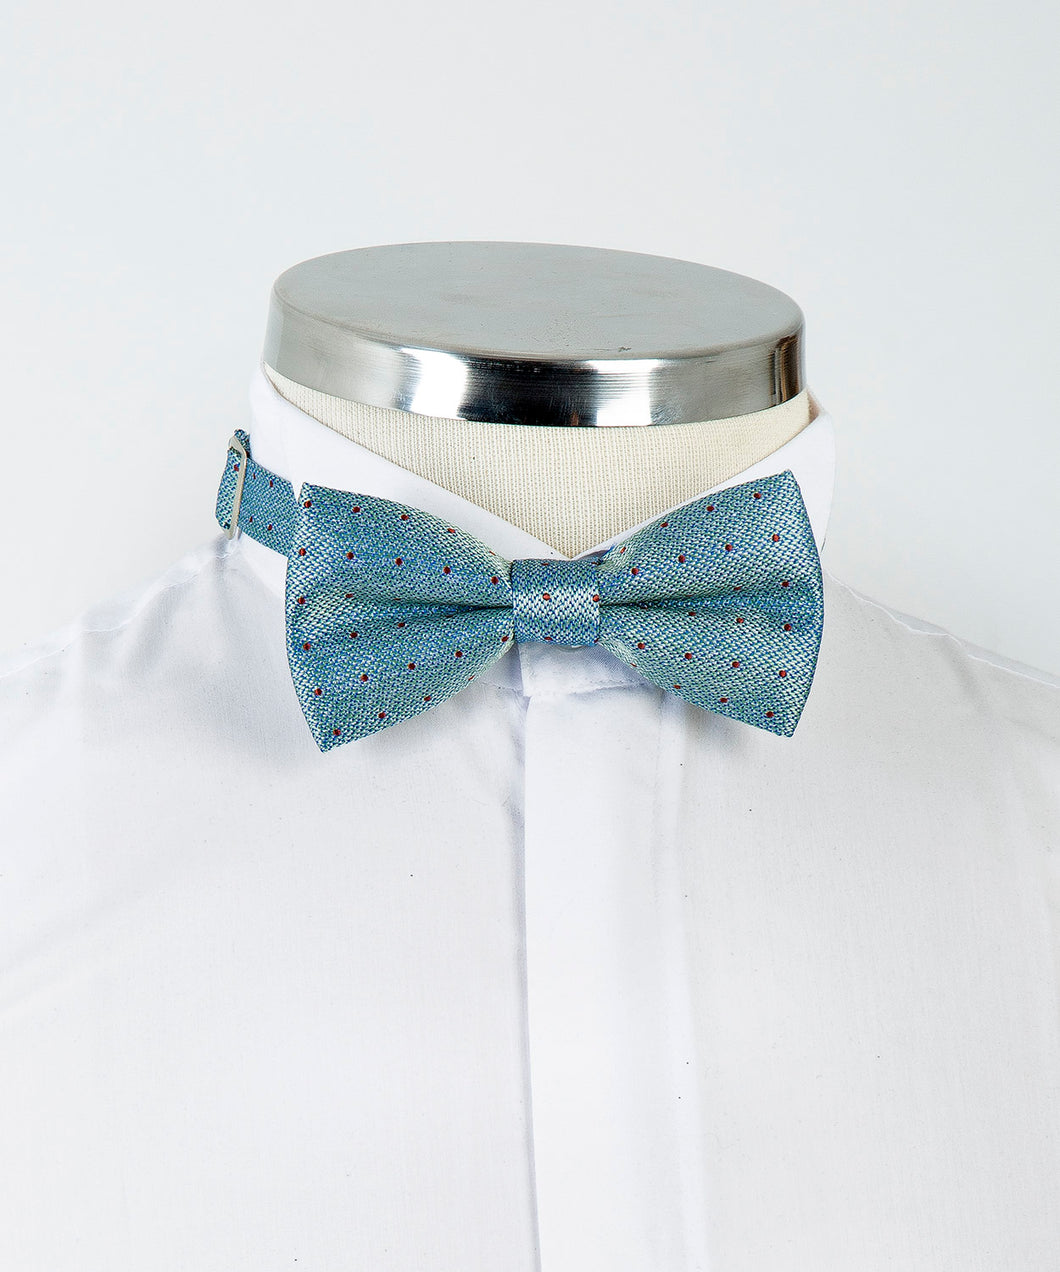 Patterned Bow Tie - Light Blue